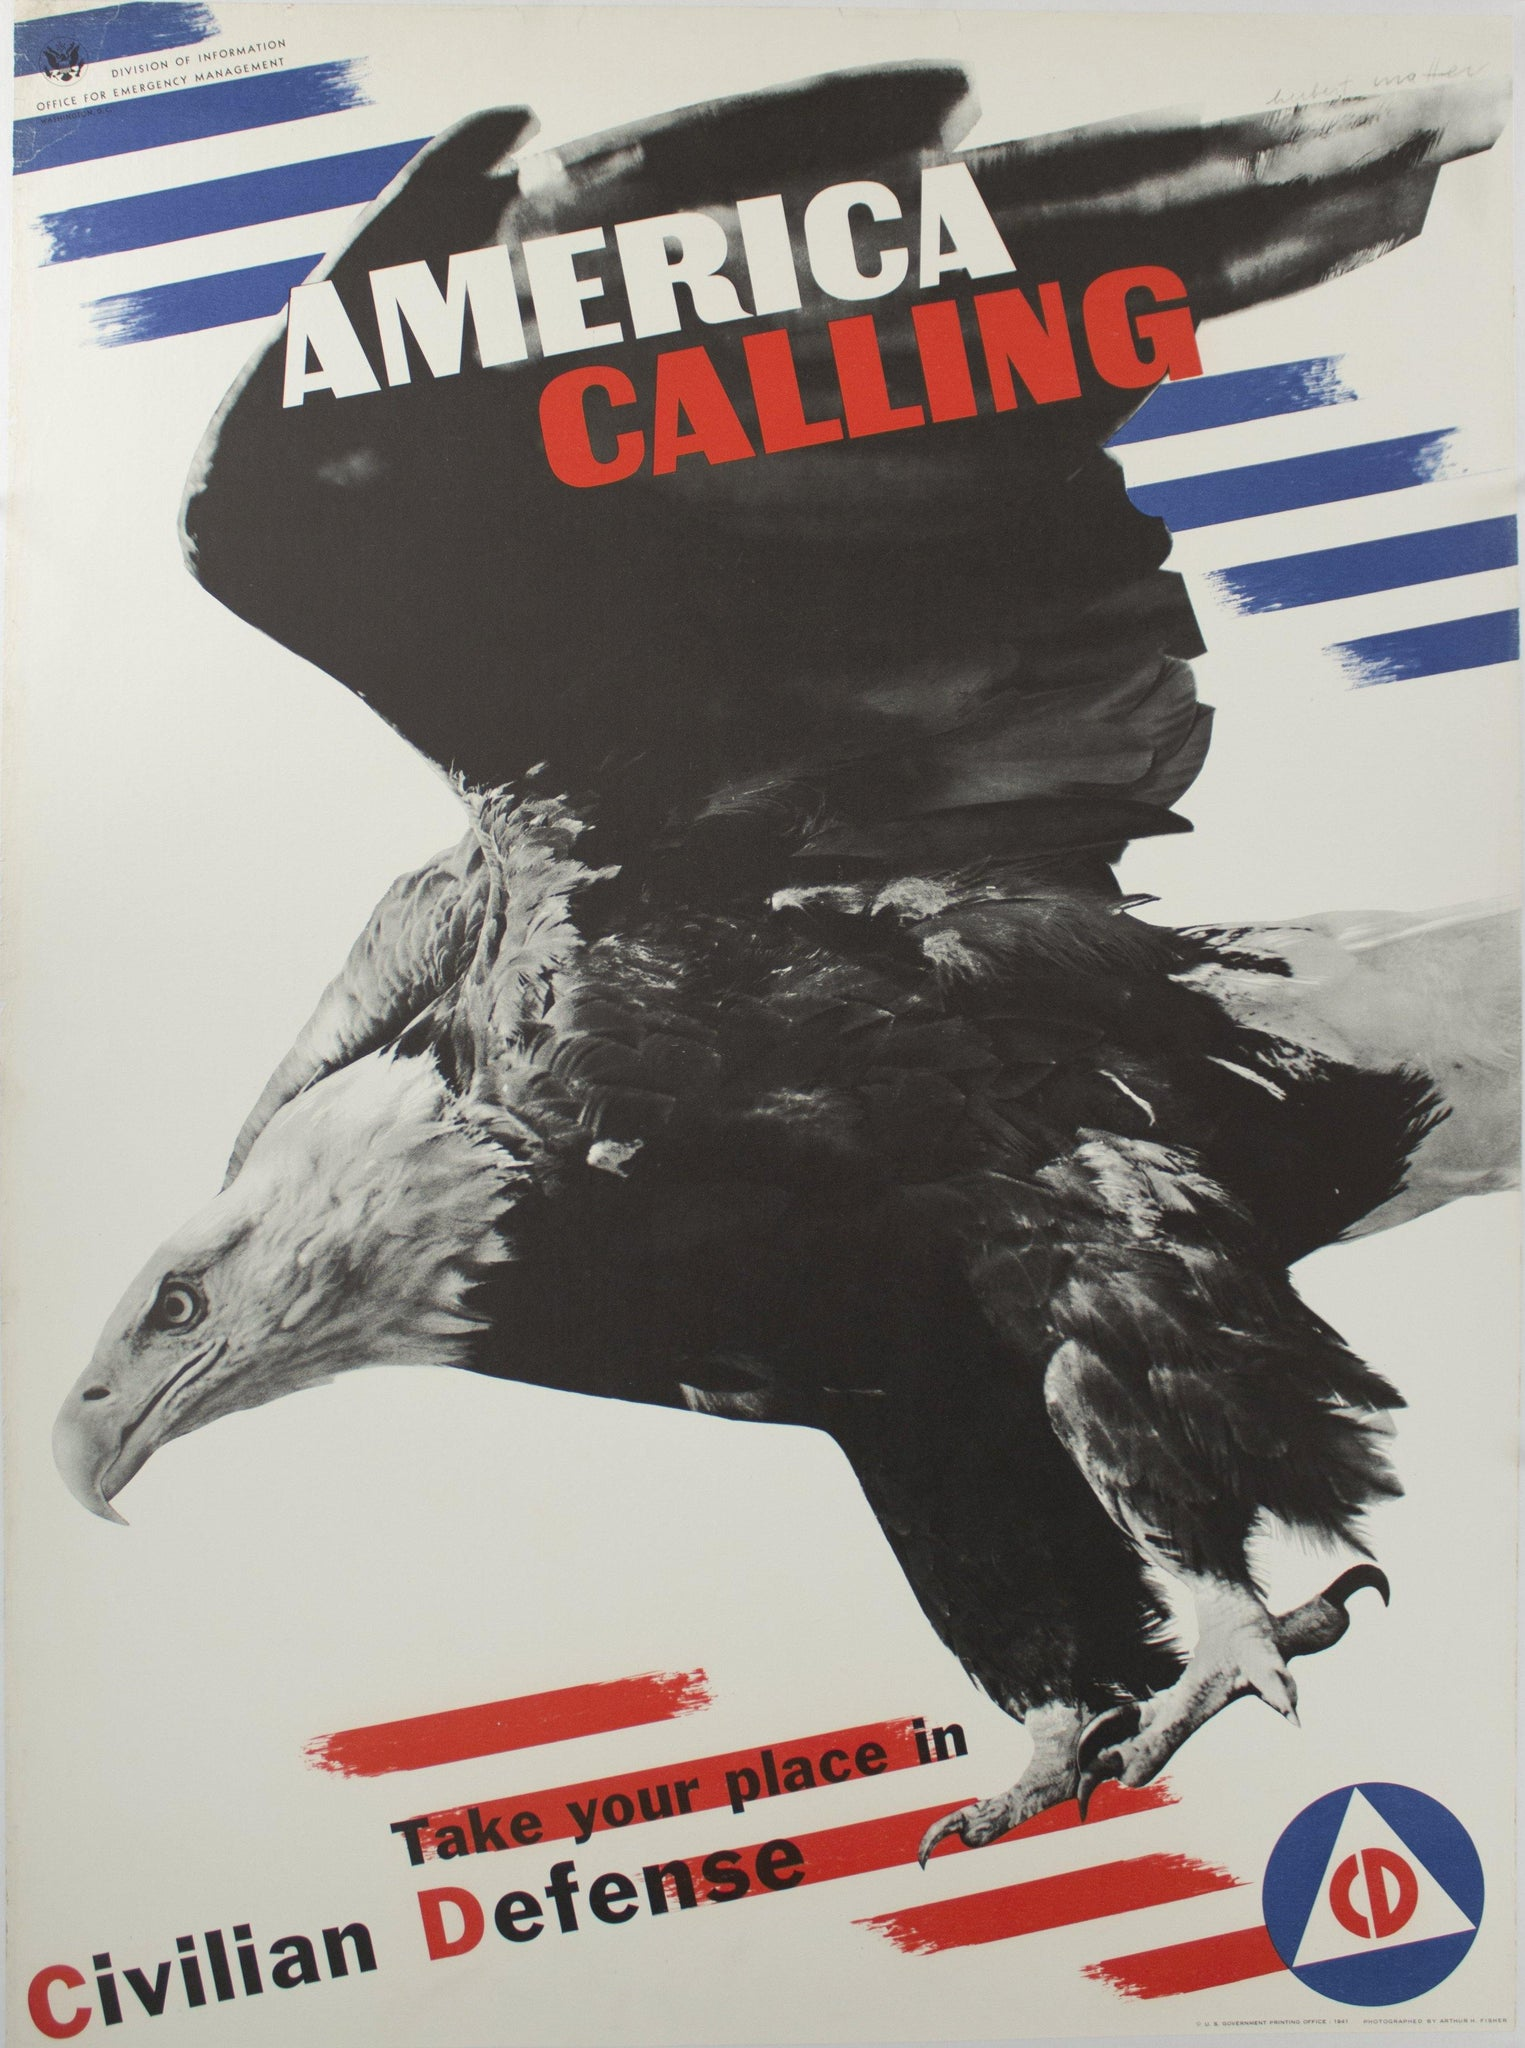 1941 America Calling, Take Your Place in Civilian Defense by Herbert Matter